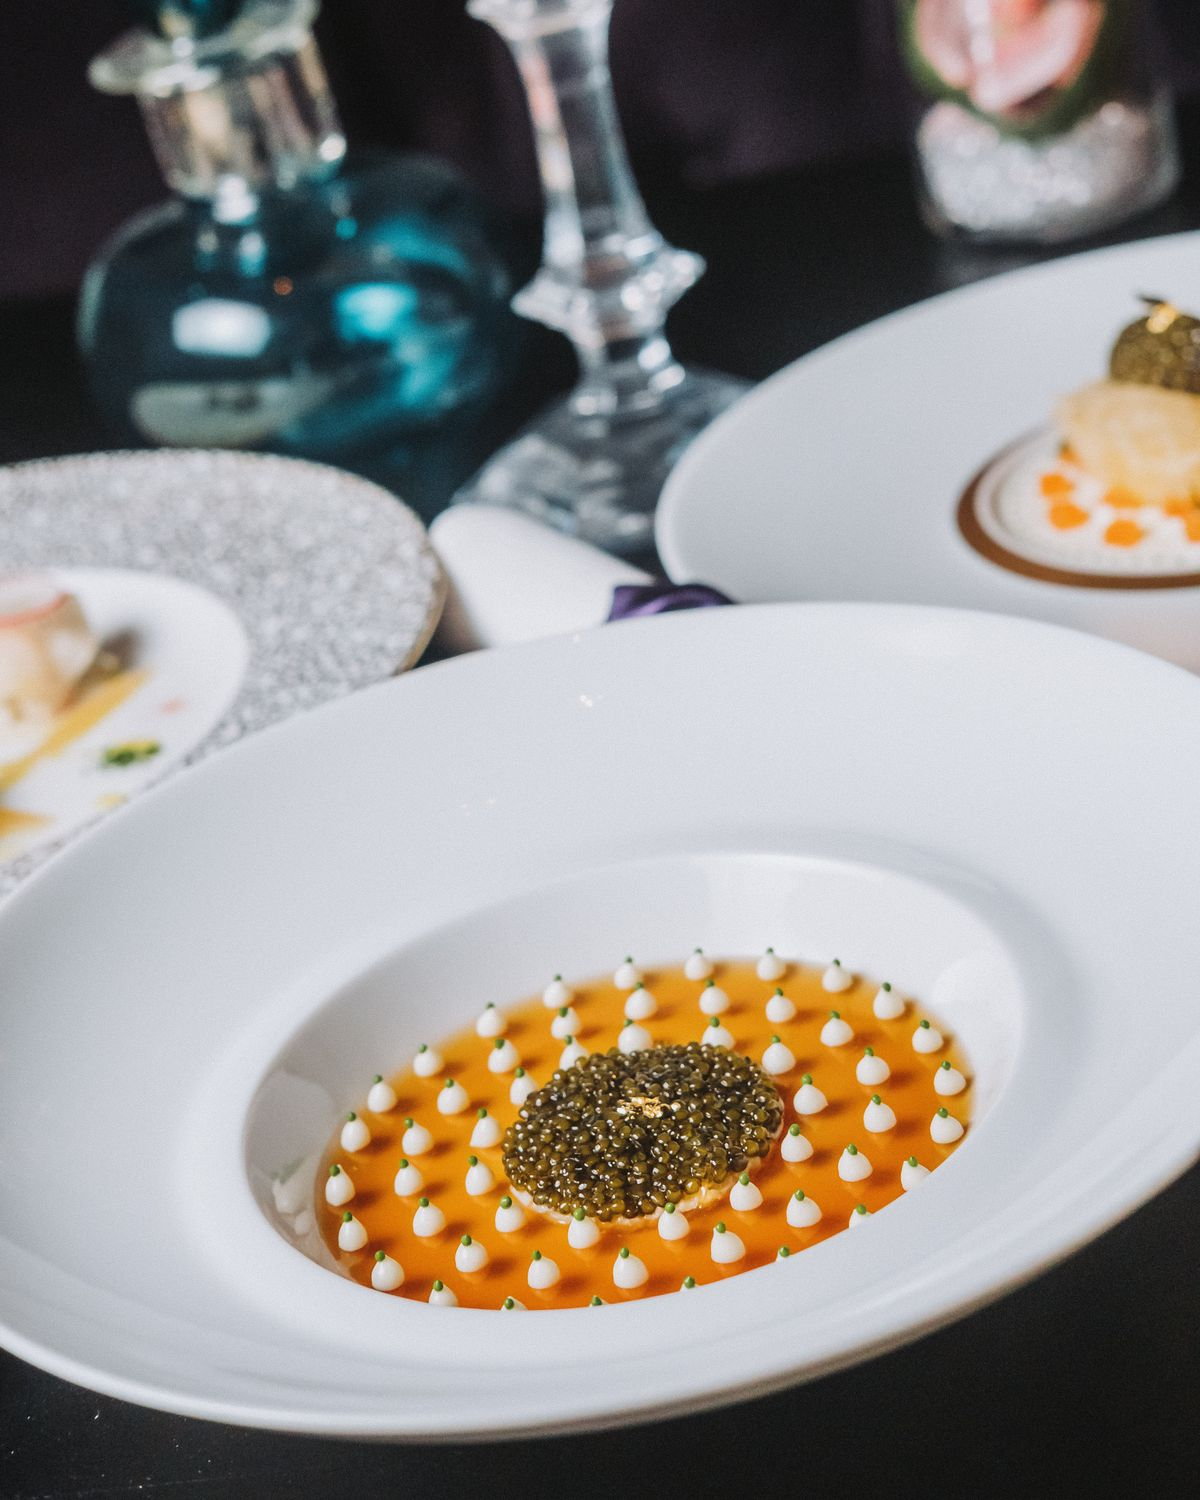 Osetra caviar served atop king crab in a crustacean gelée dotted with cauliflower puree